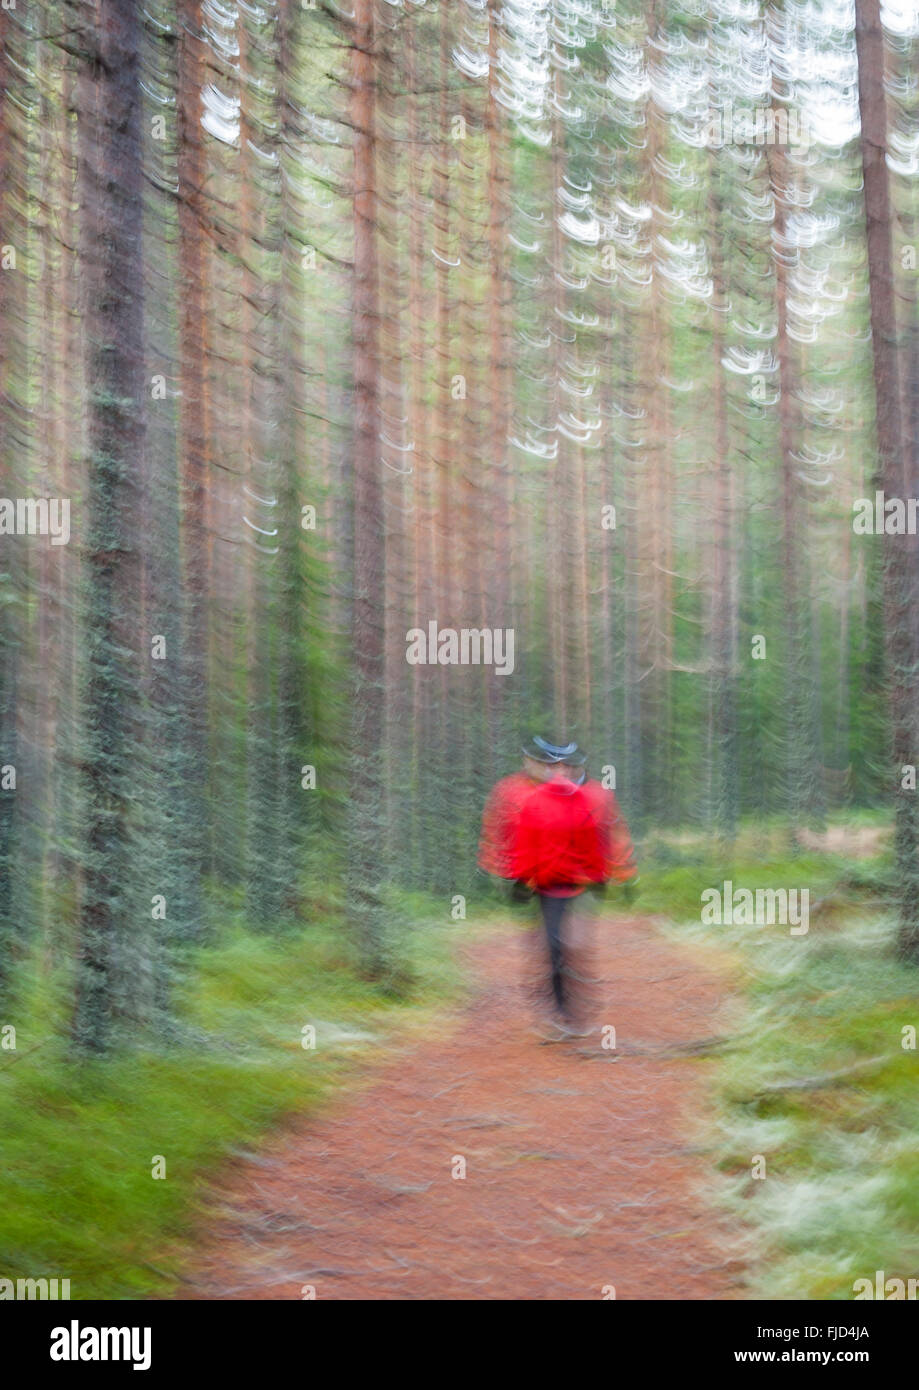 Blurred walk in the forest. Sweden - Stock Image